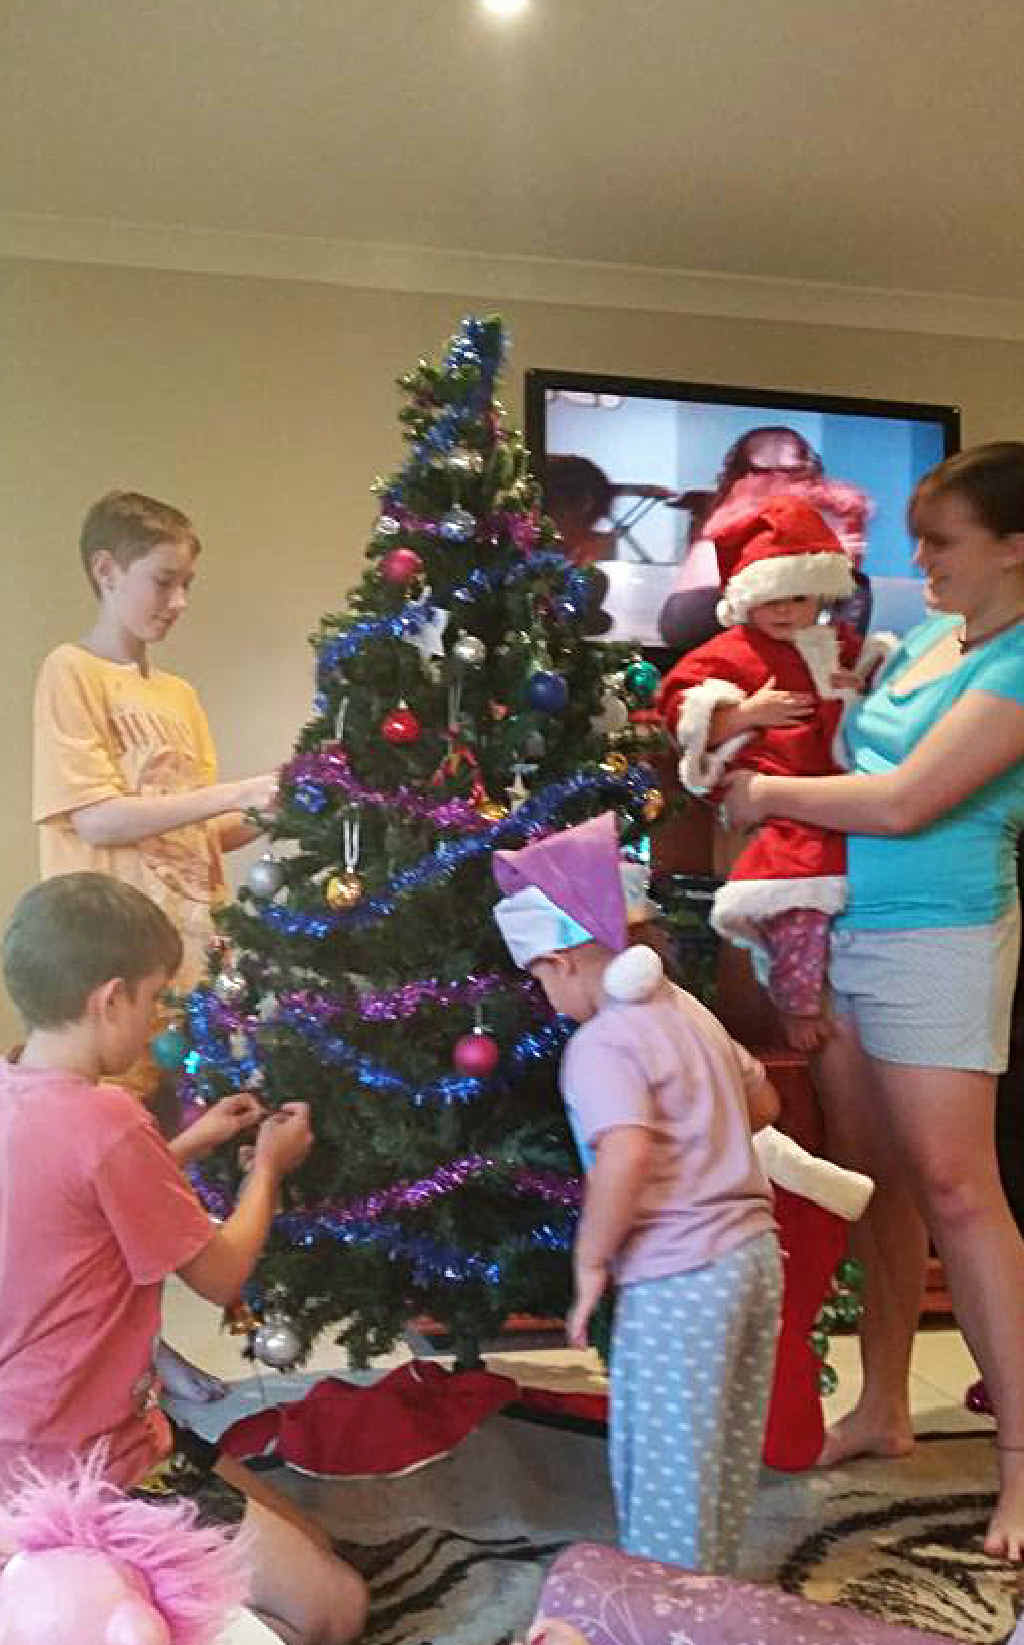 TEAM EFFORT: Tiana McKee supplied this lovely photo of her family gathering to decorate their Christmas tree.